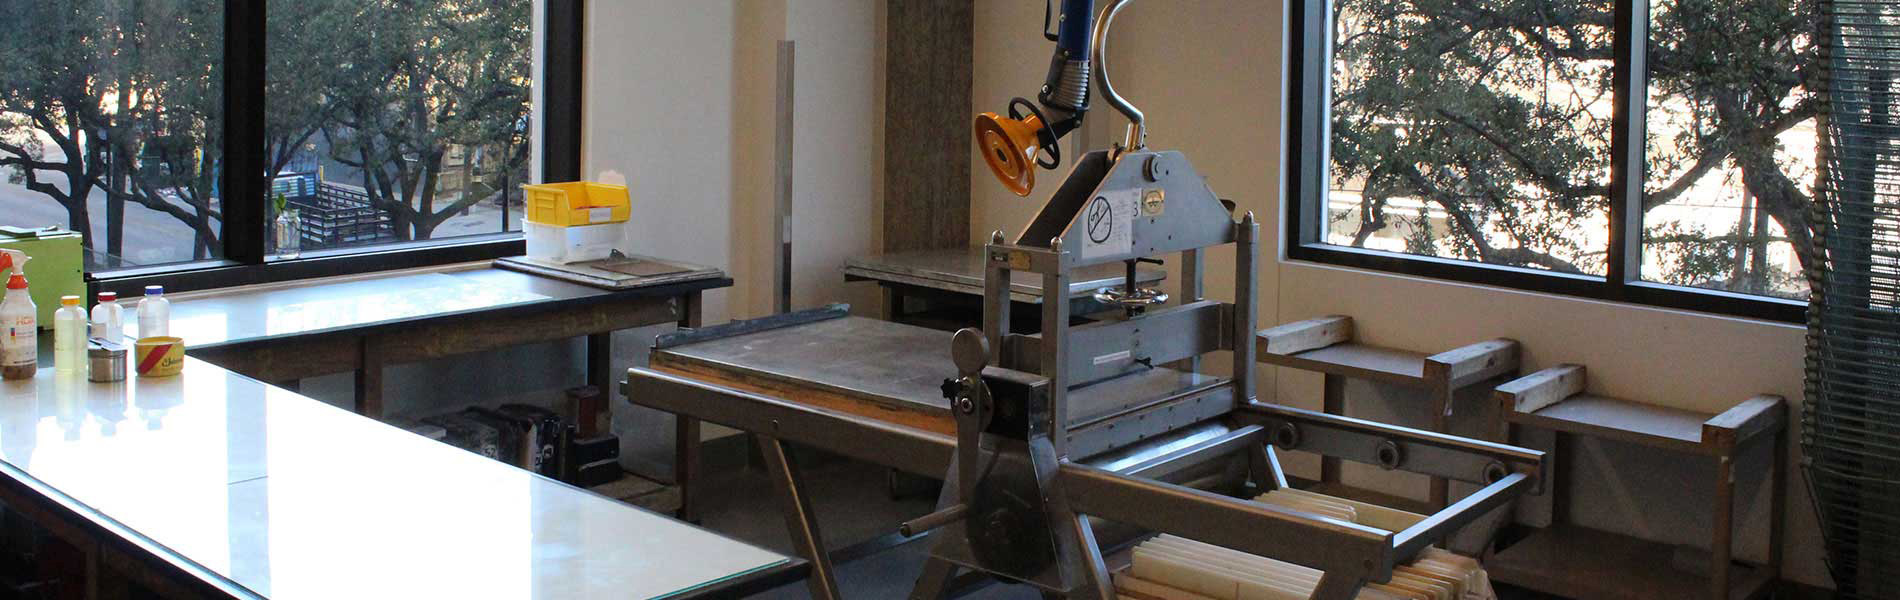 Studio Art Lithography Station in the Art Building